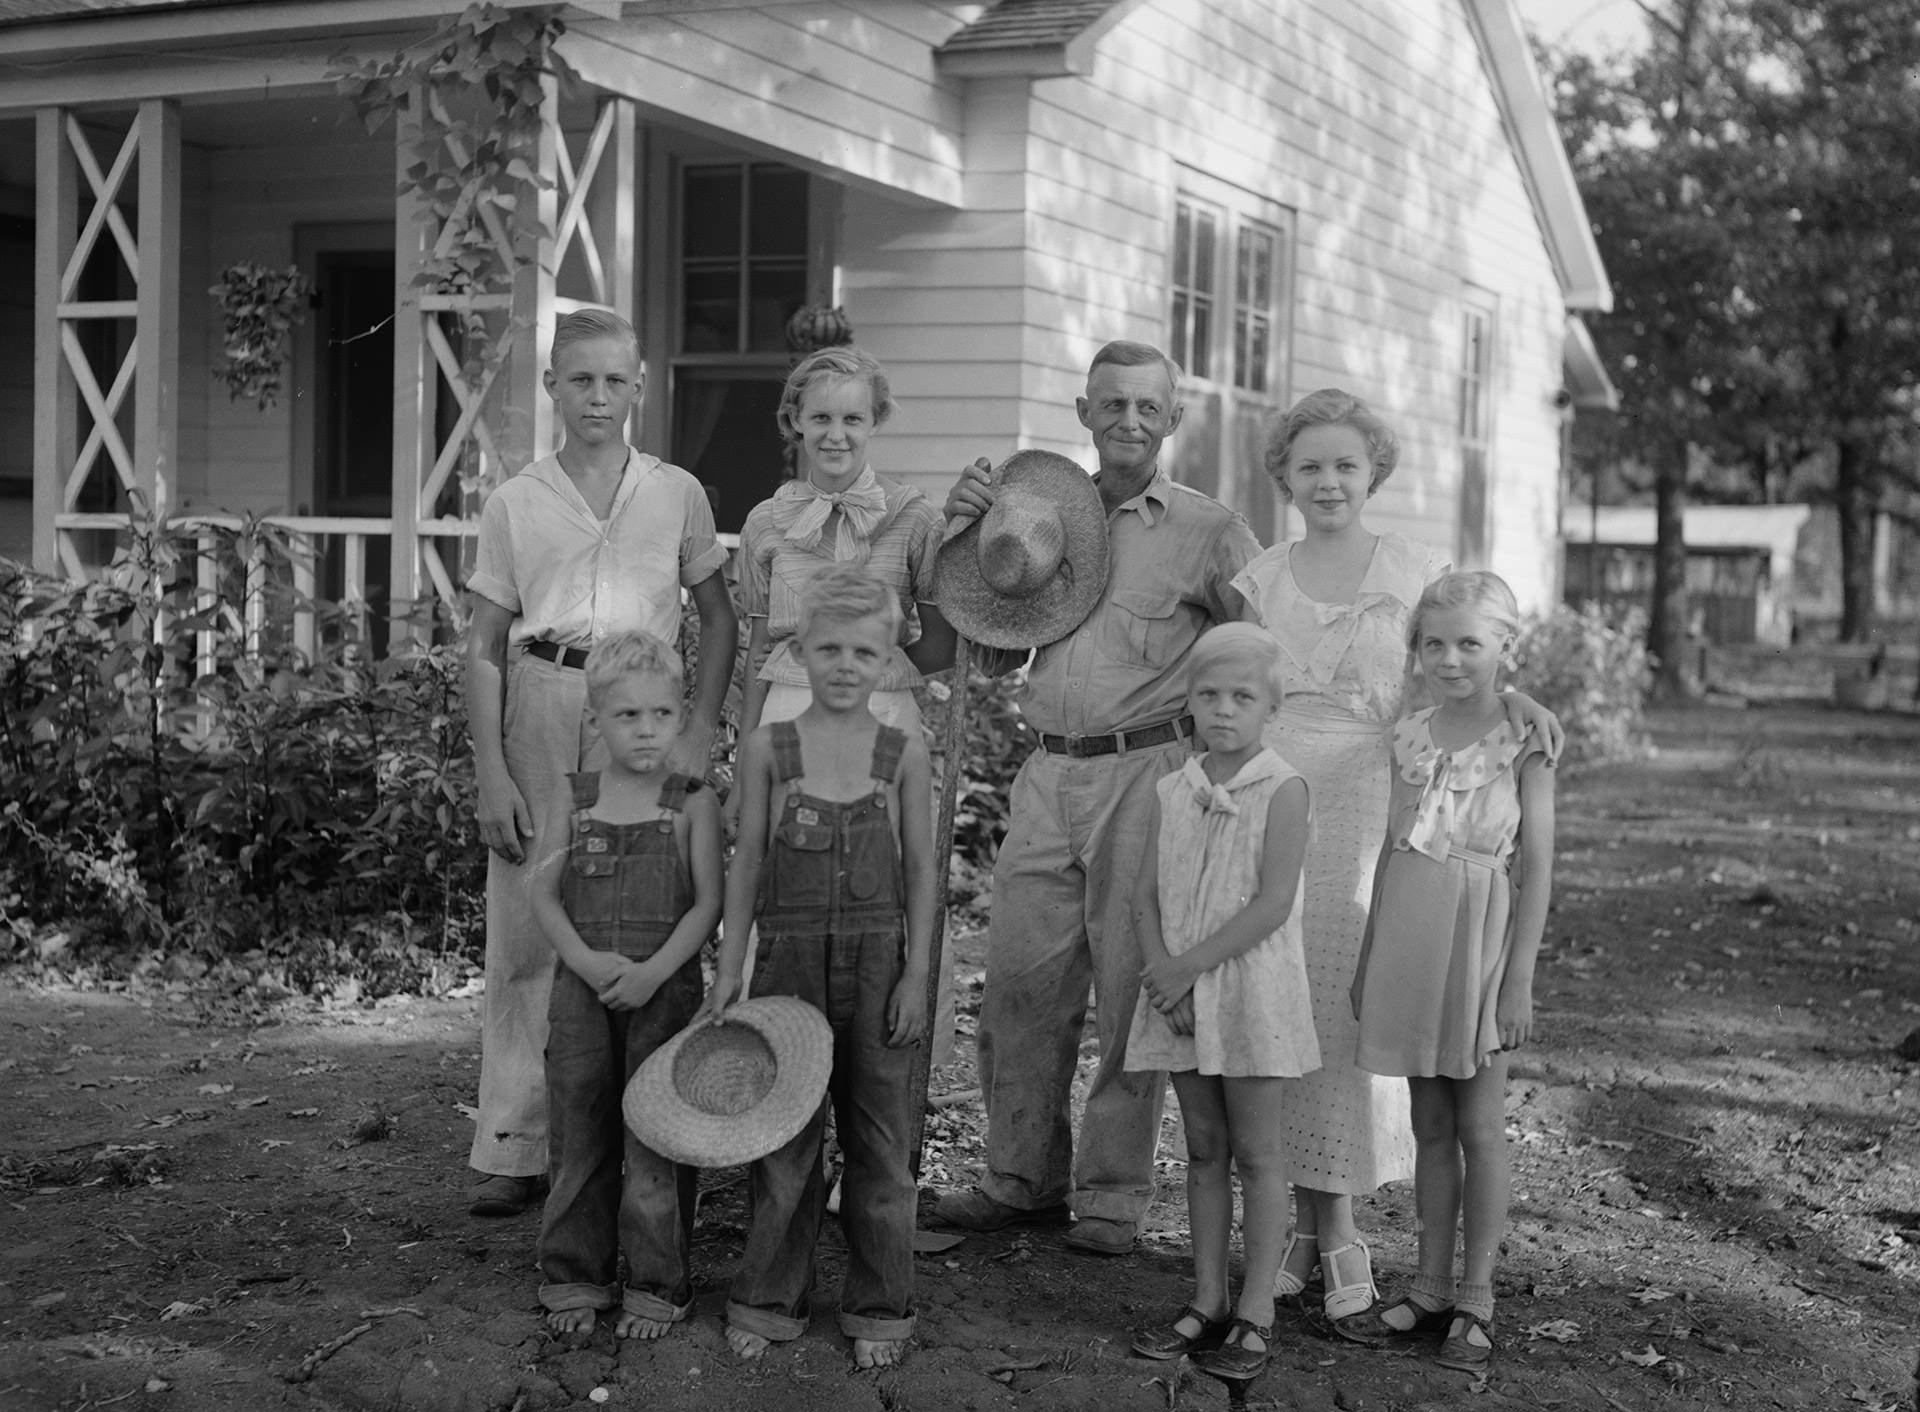 A resettled farmer and his family, photographed by Arthur Rothstein in 1935 at Dyess.